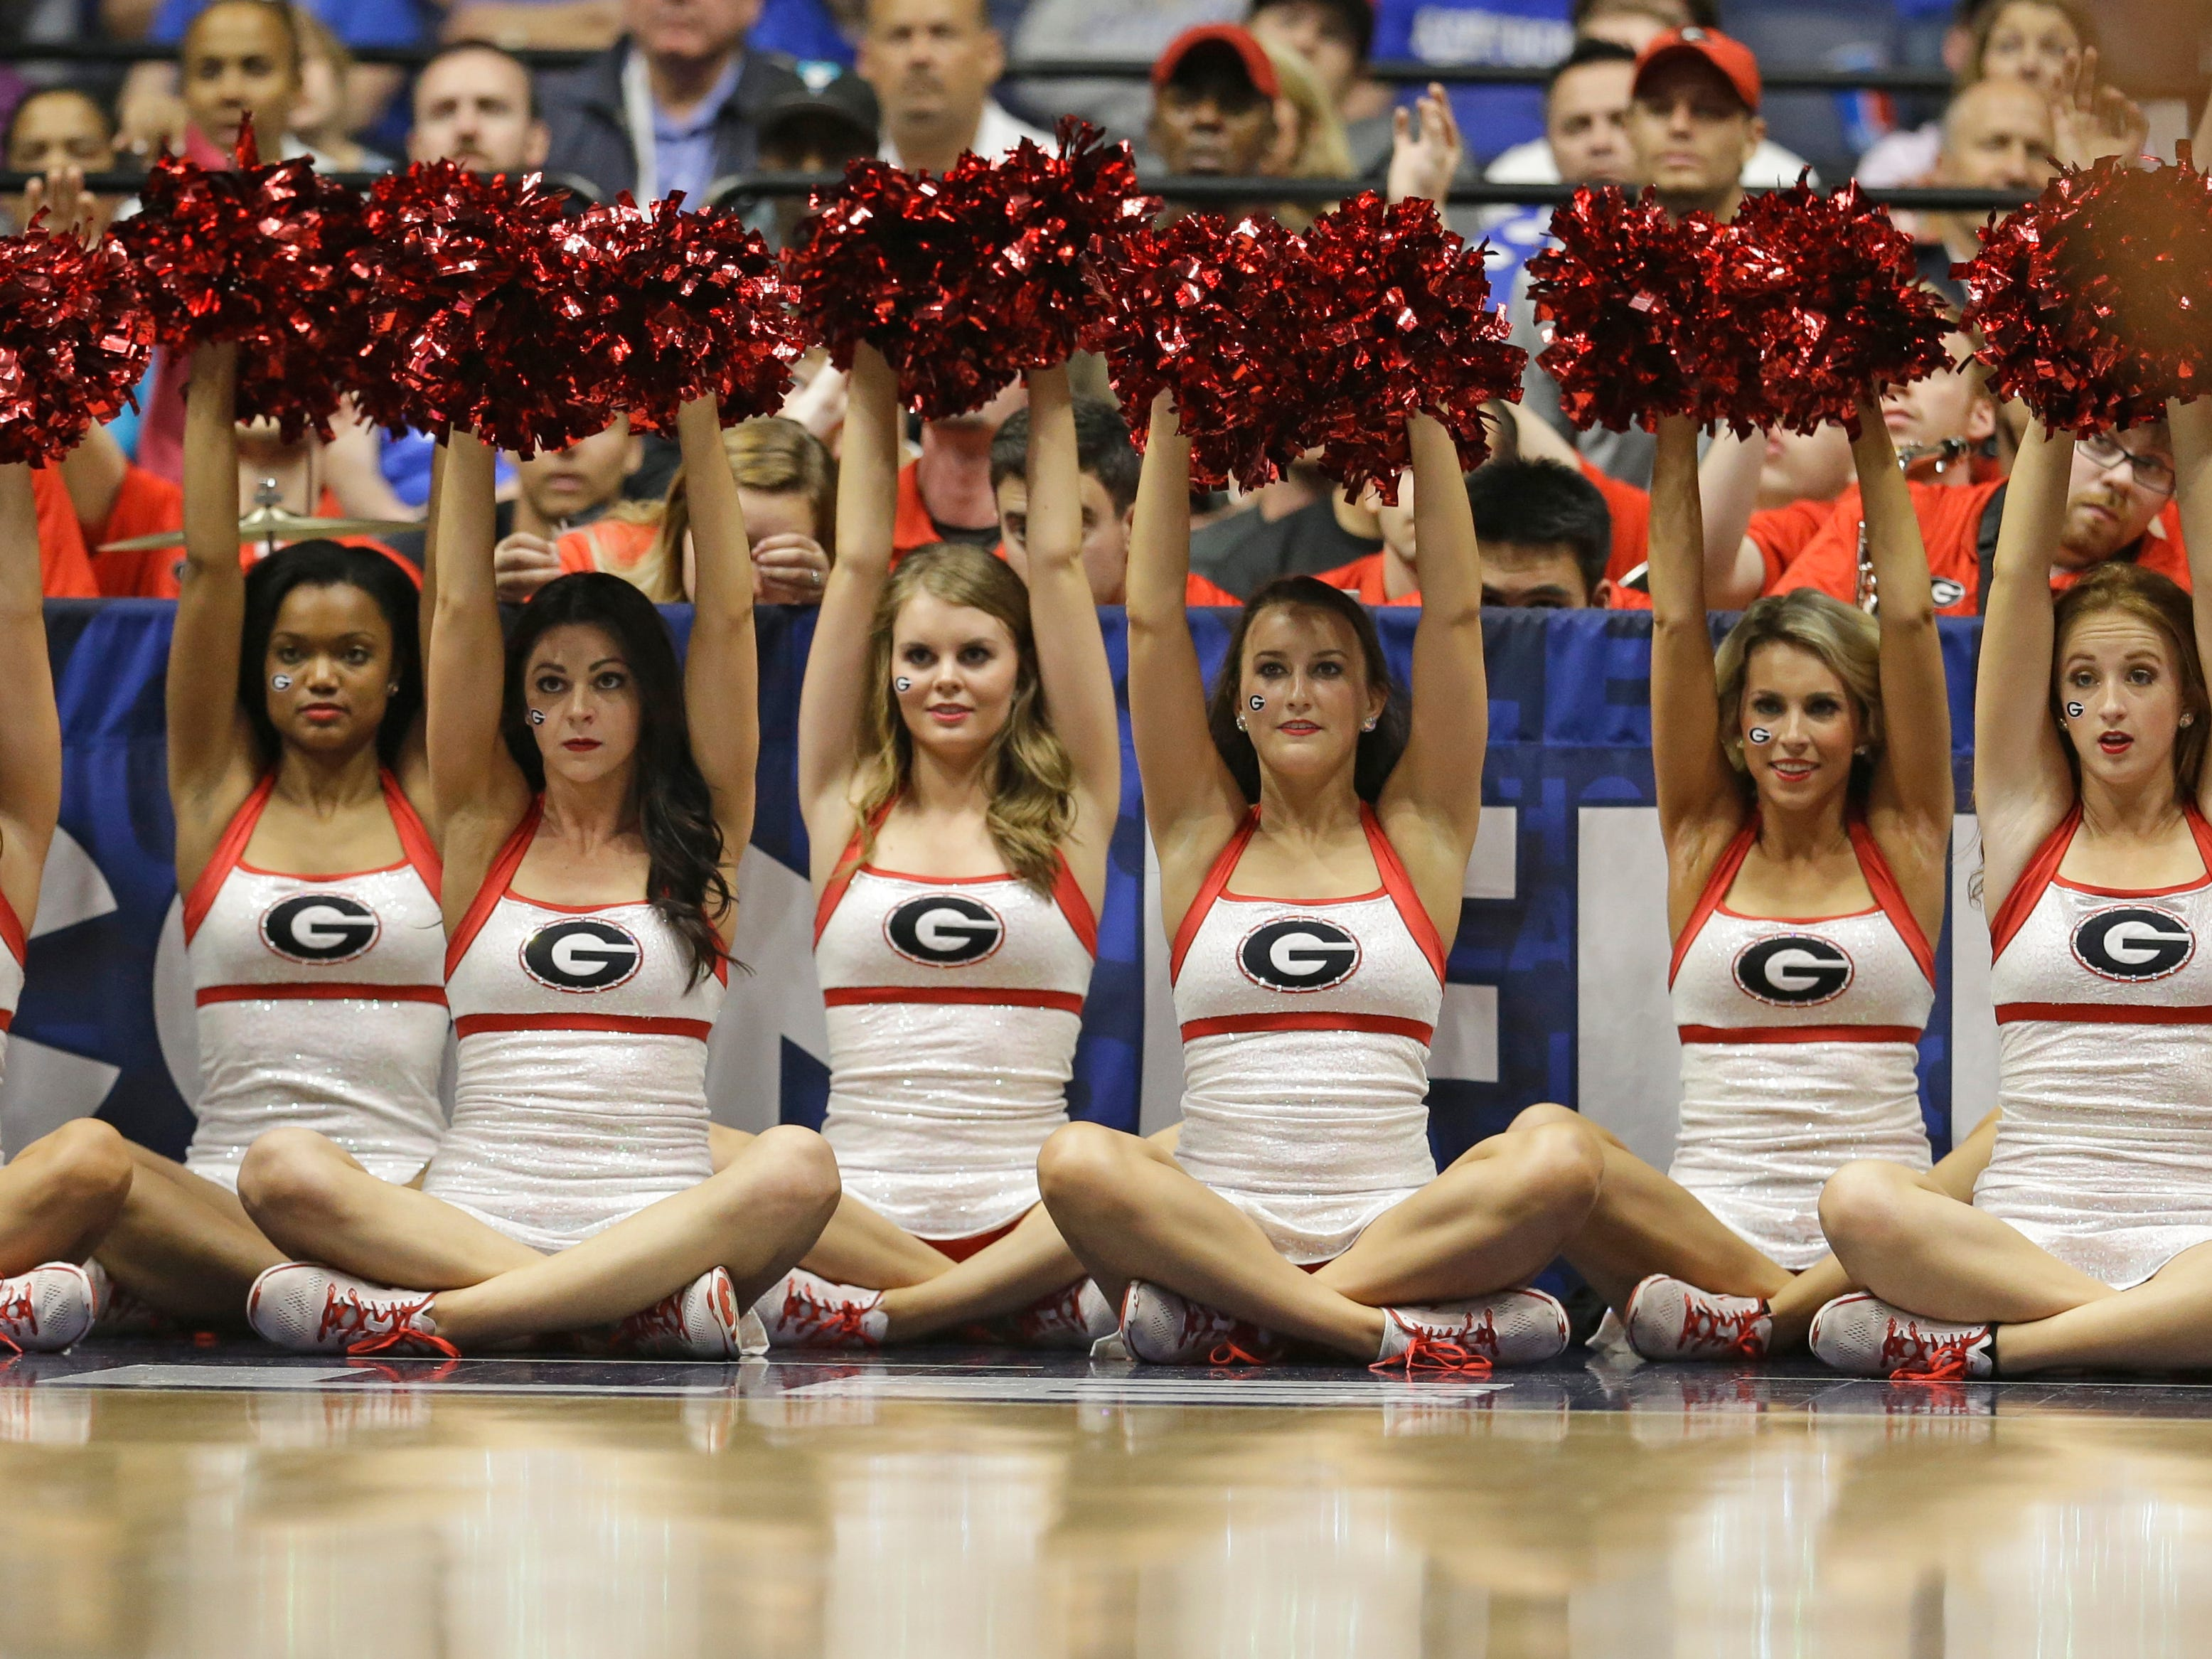 Georgia cheerleaders perform during the first half of an NCAA college basketball game against Kentucky in the Southeastern Conference tournament in Nashville, Tenn., Saturday, March 12, 2016. (AP Photo/Mark Humphrey)